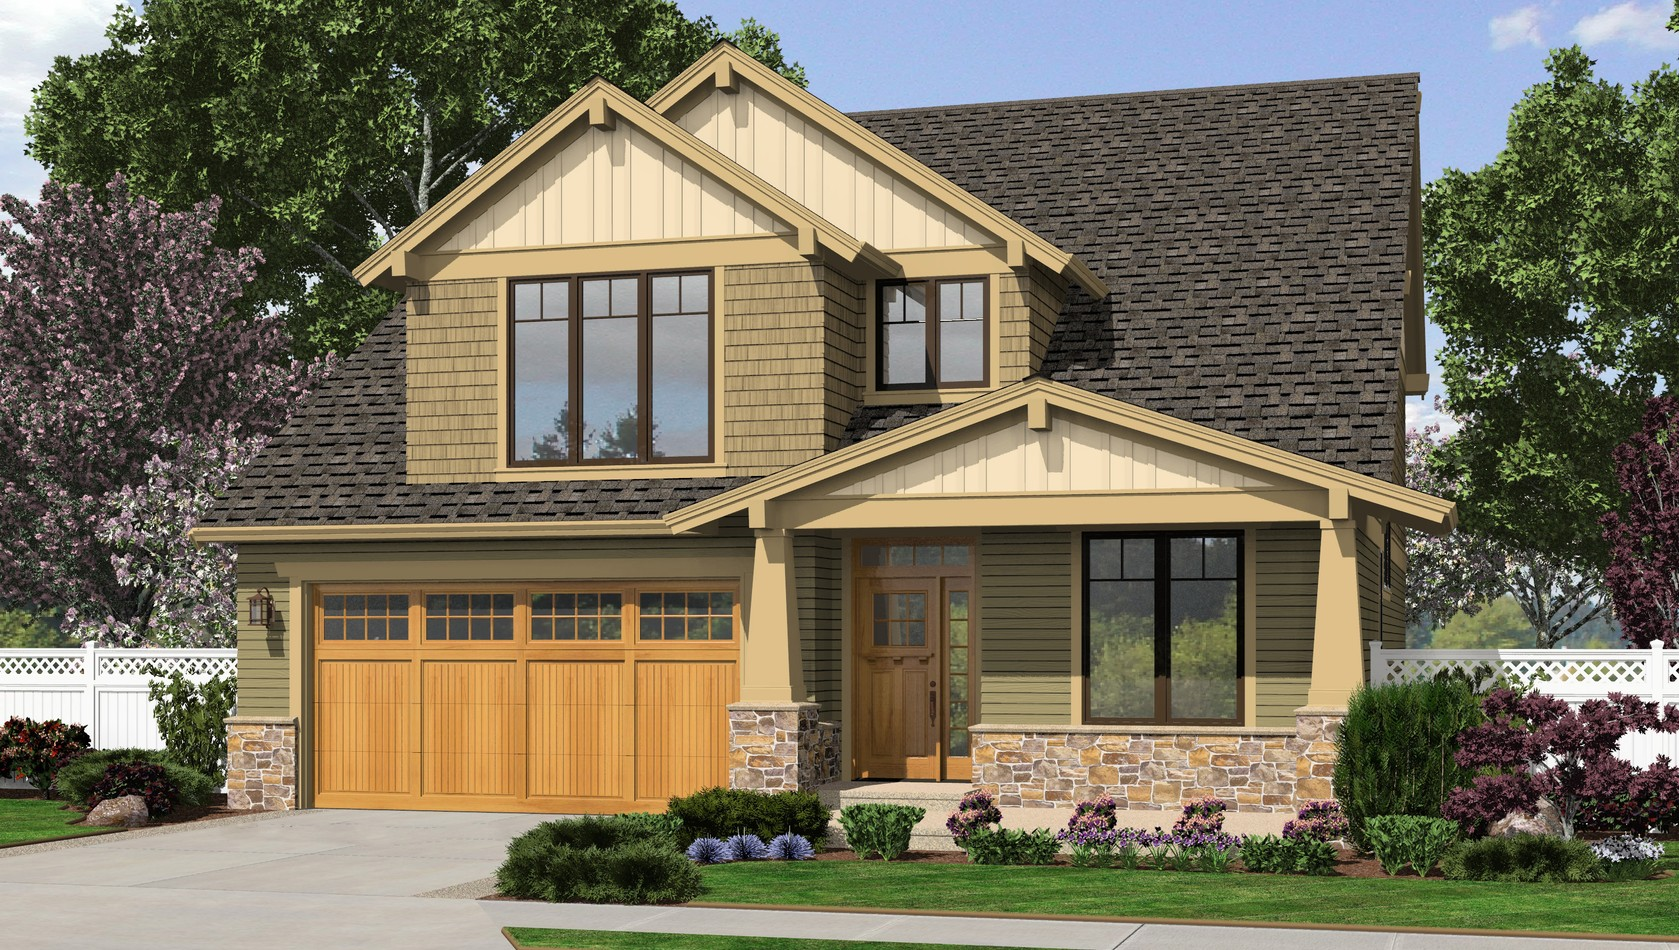 Main image for house plan 2230CD: The Olympia